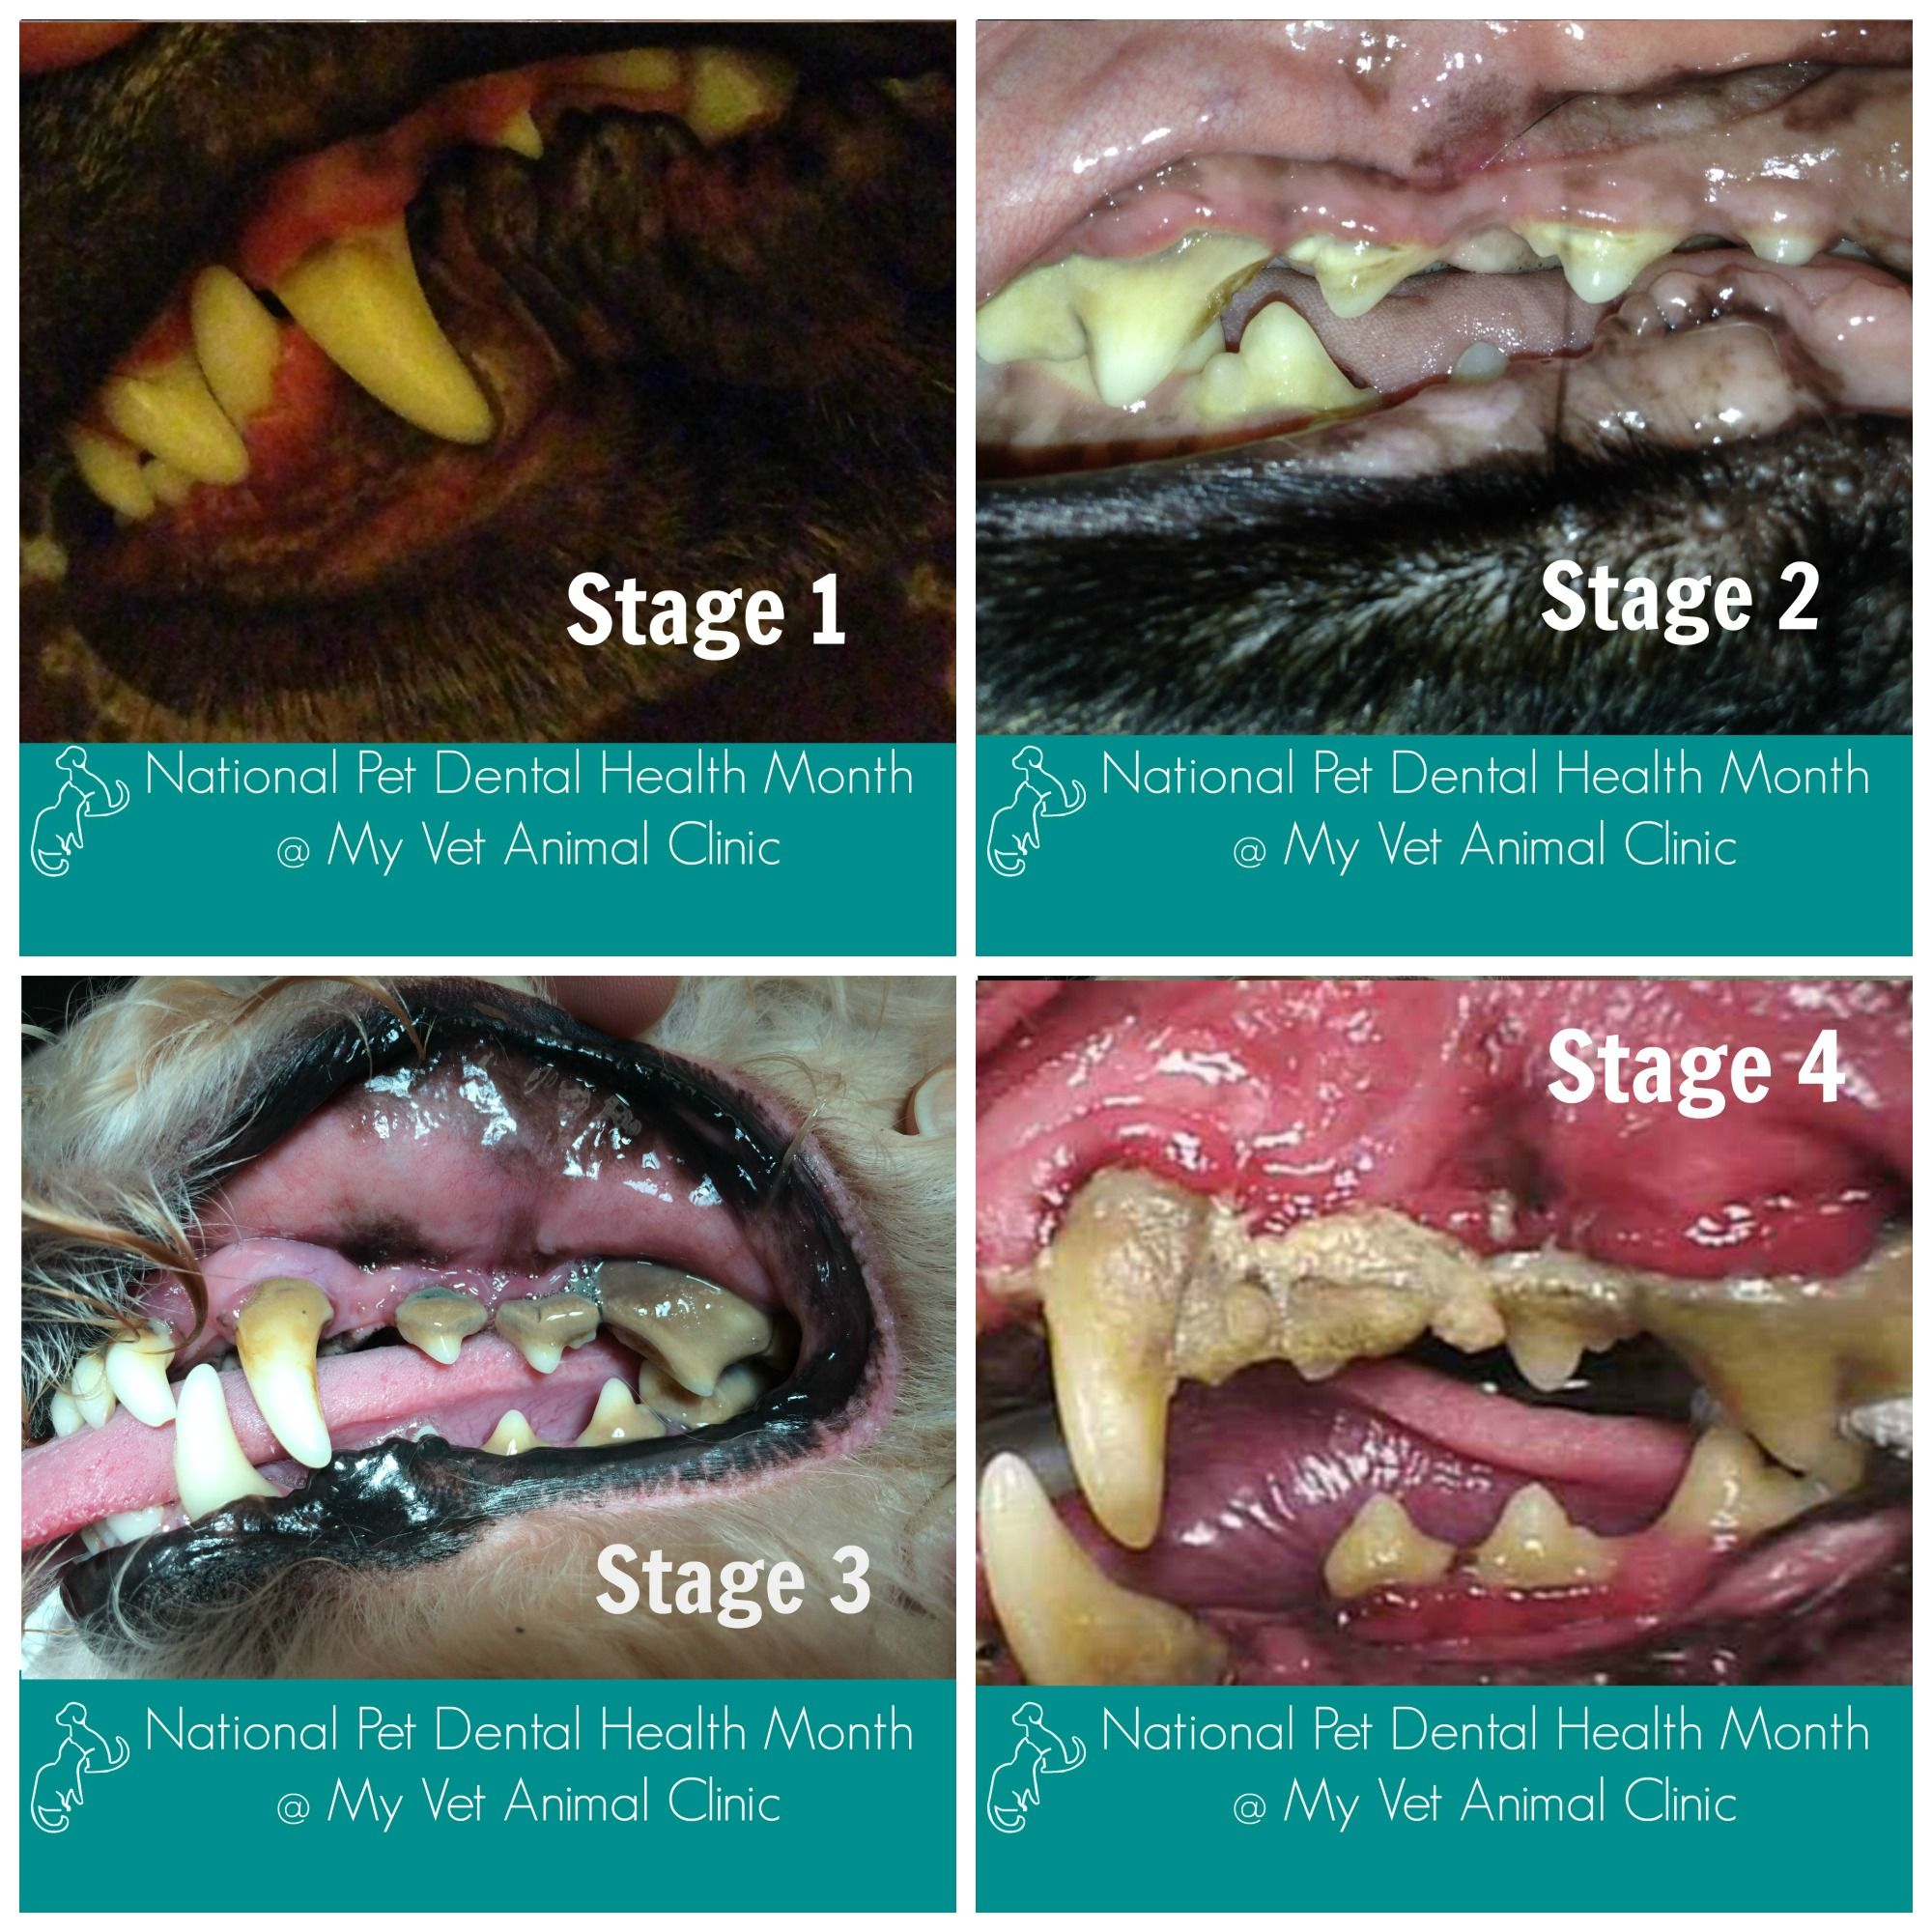 Four stages of periodontal disease preventive care and